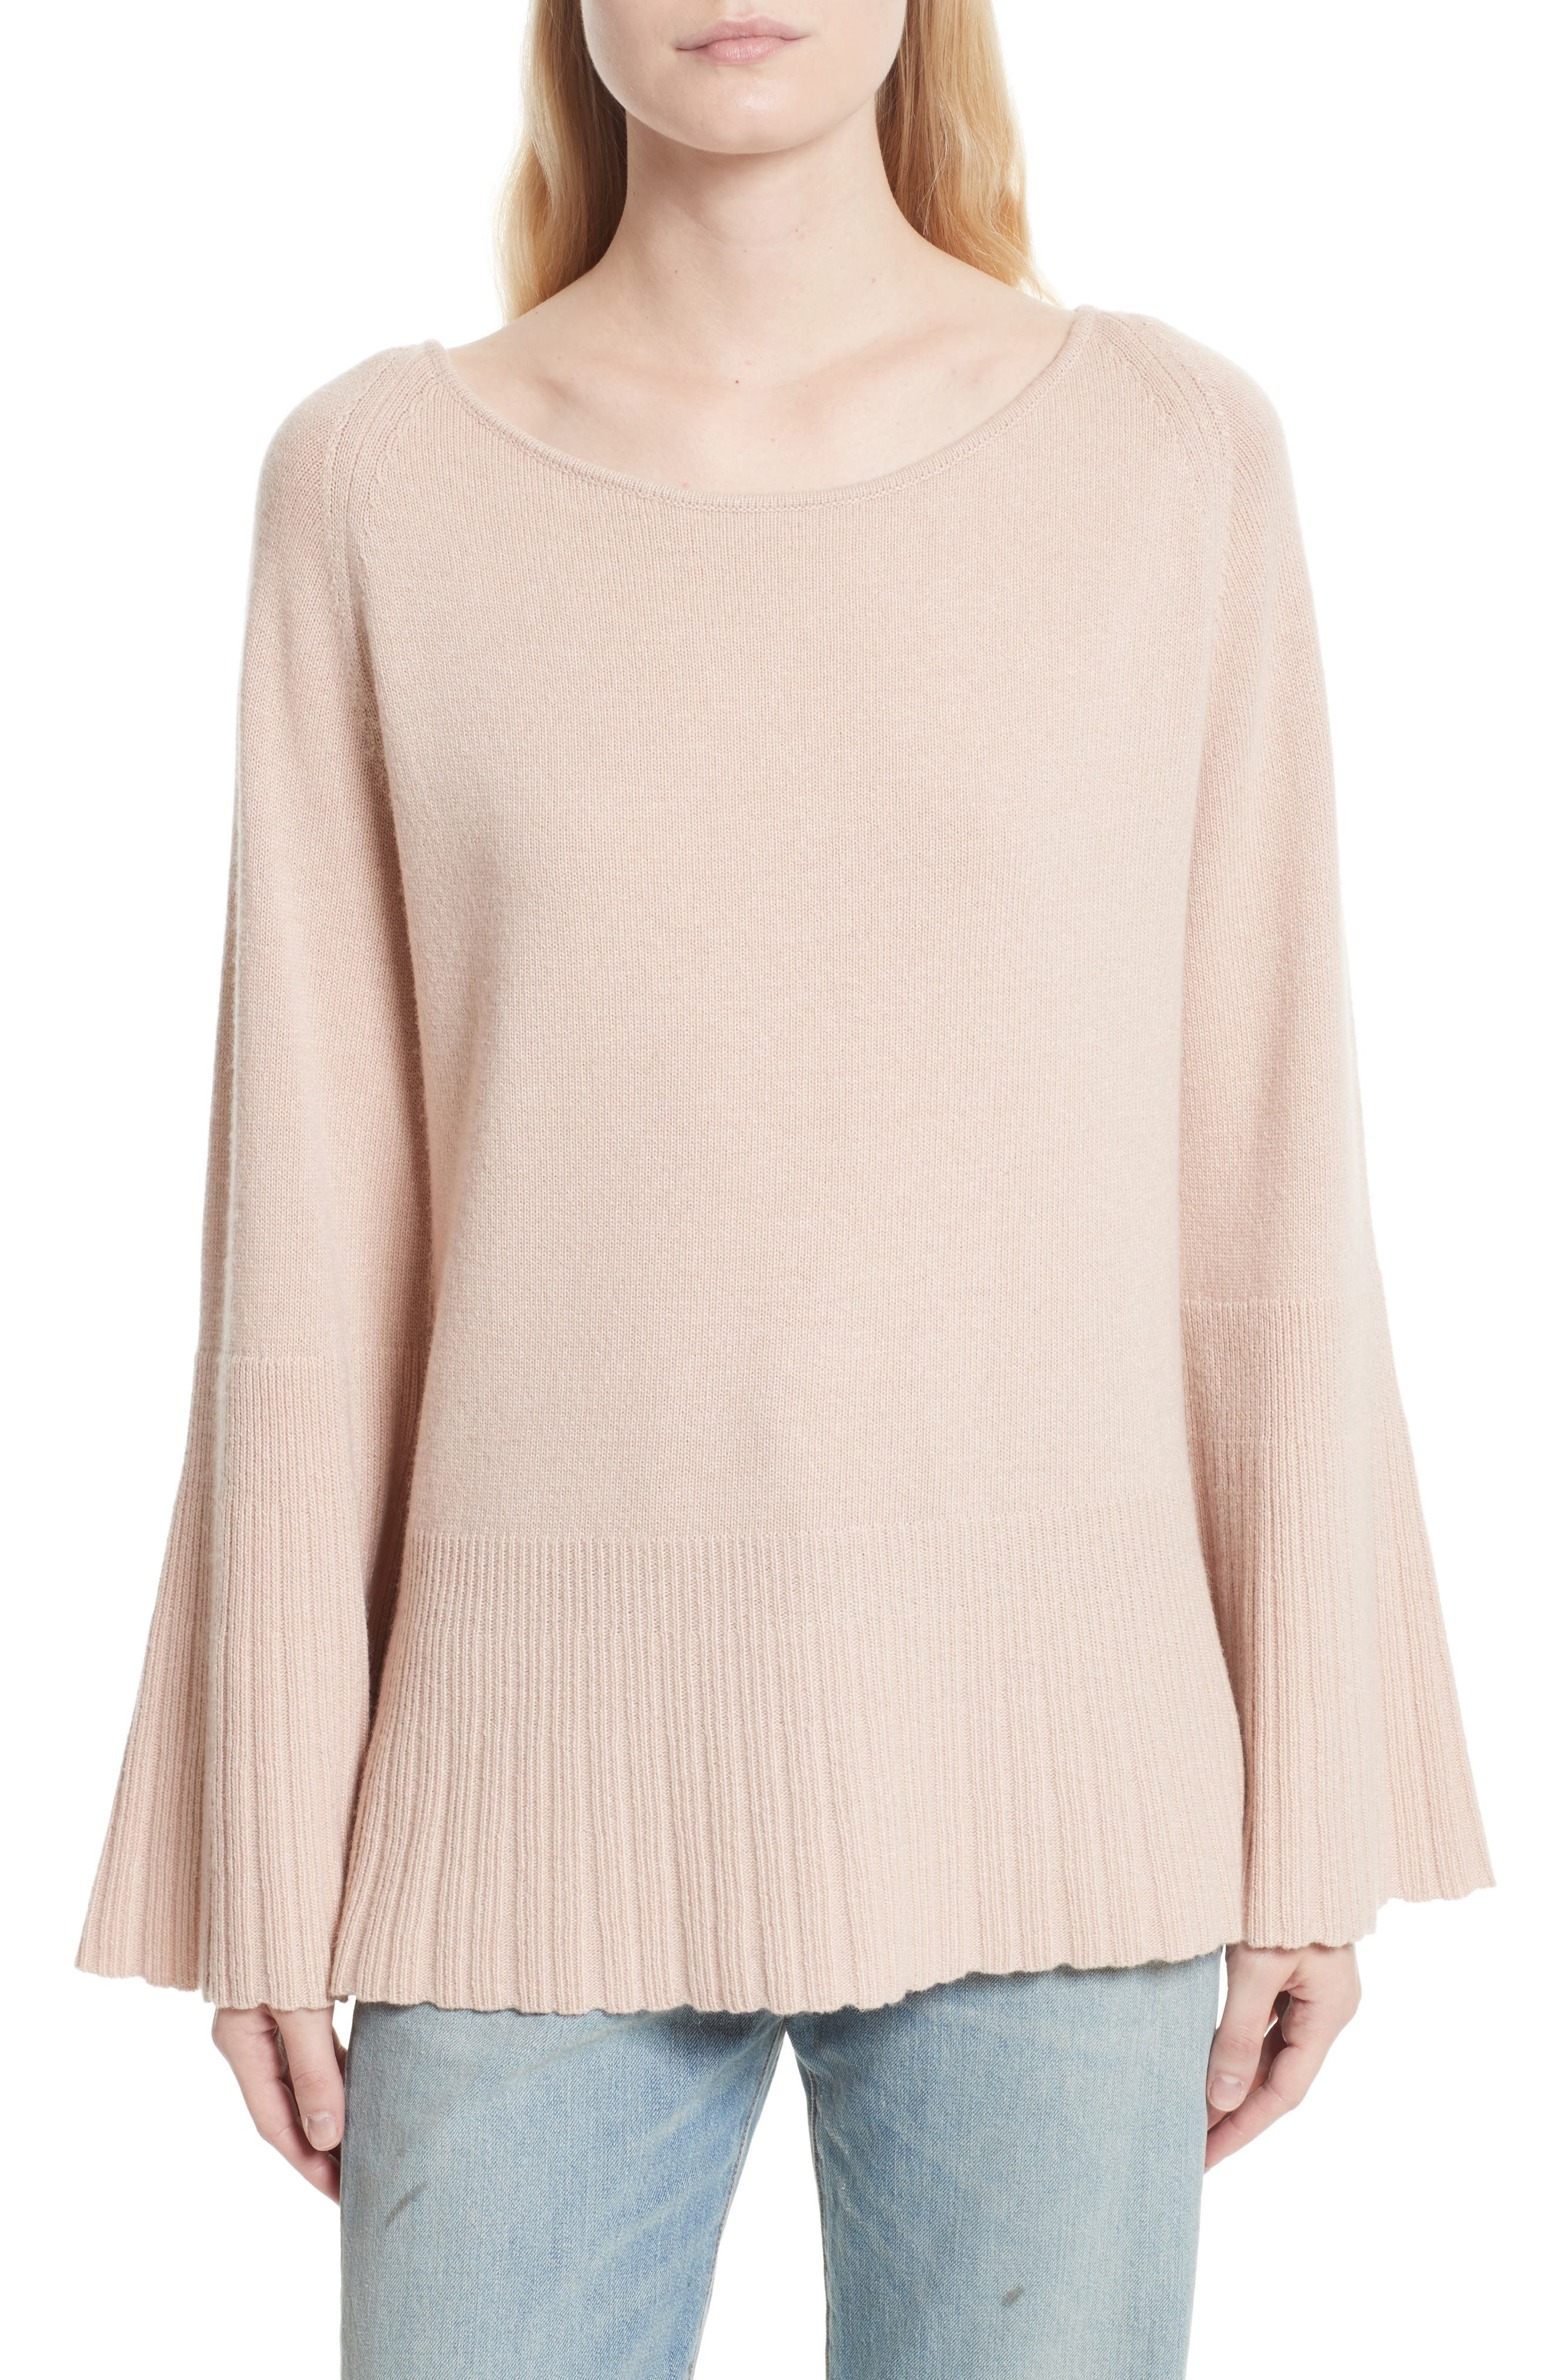 Elizabeth and James Clarette Bell Sleeve Sweater